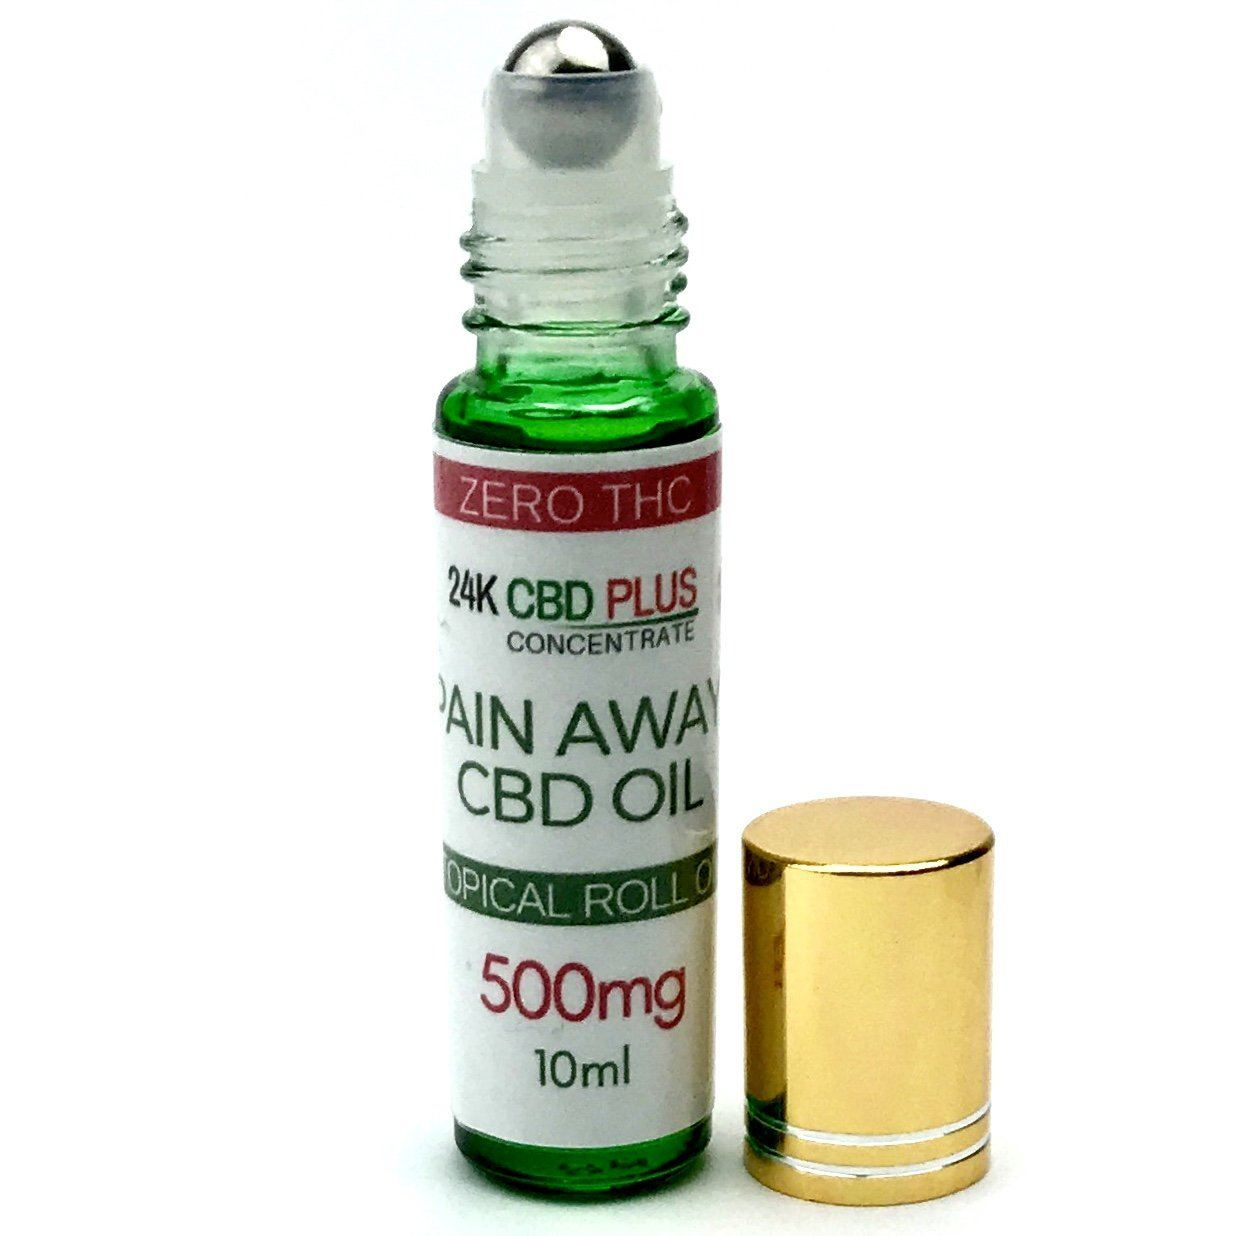 Pain Remedy - Pure CBD OIL PAIN RELIEF Anti Inflammatory Roll On Stick - 0% THC